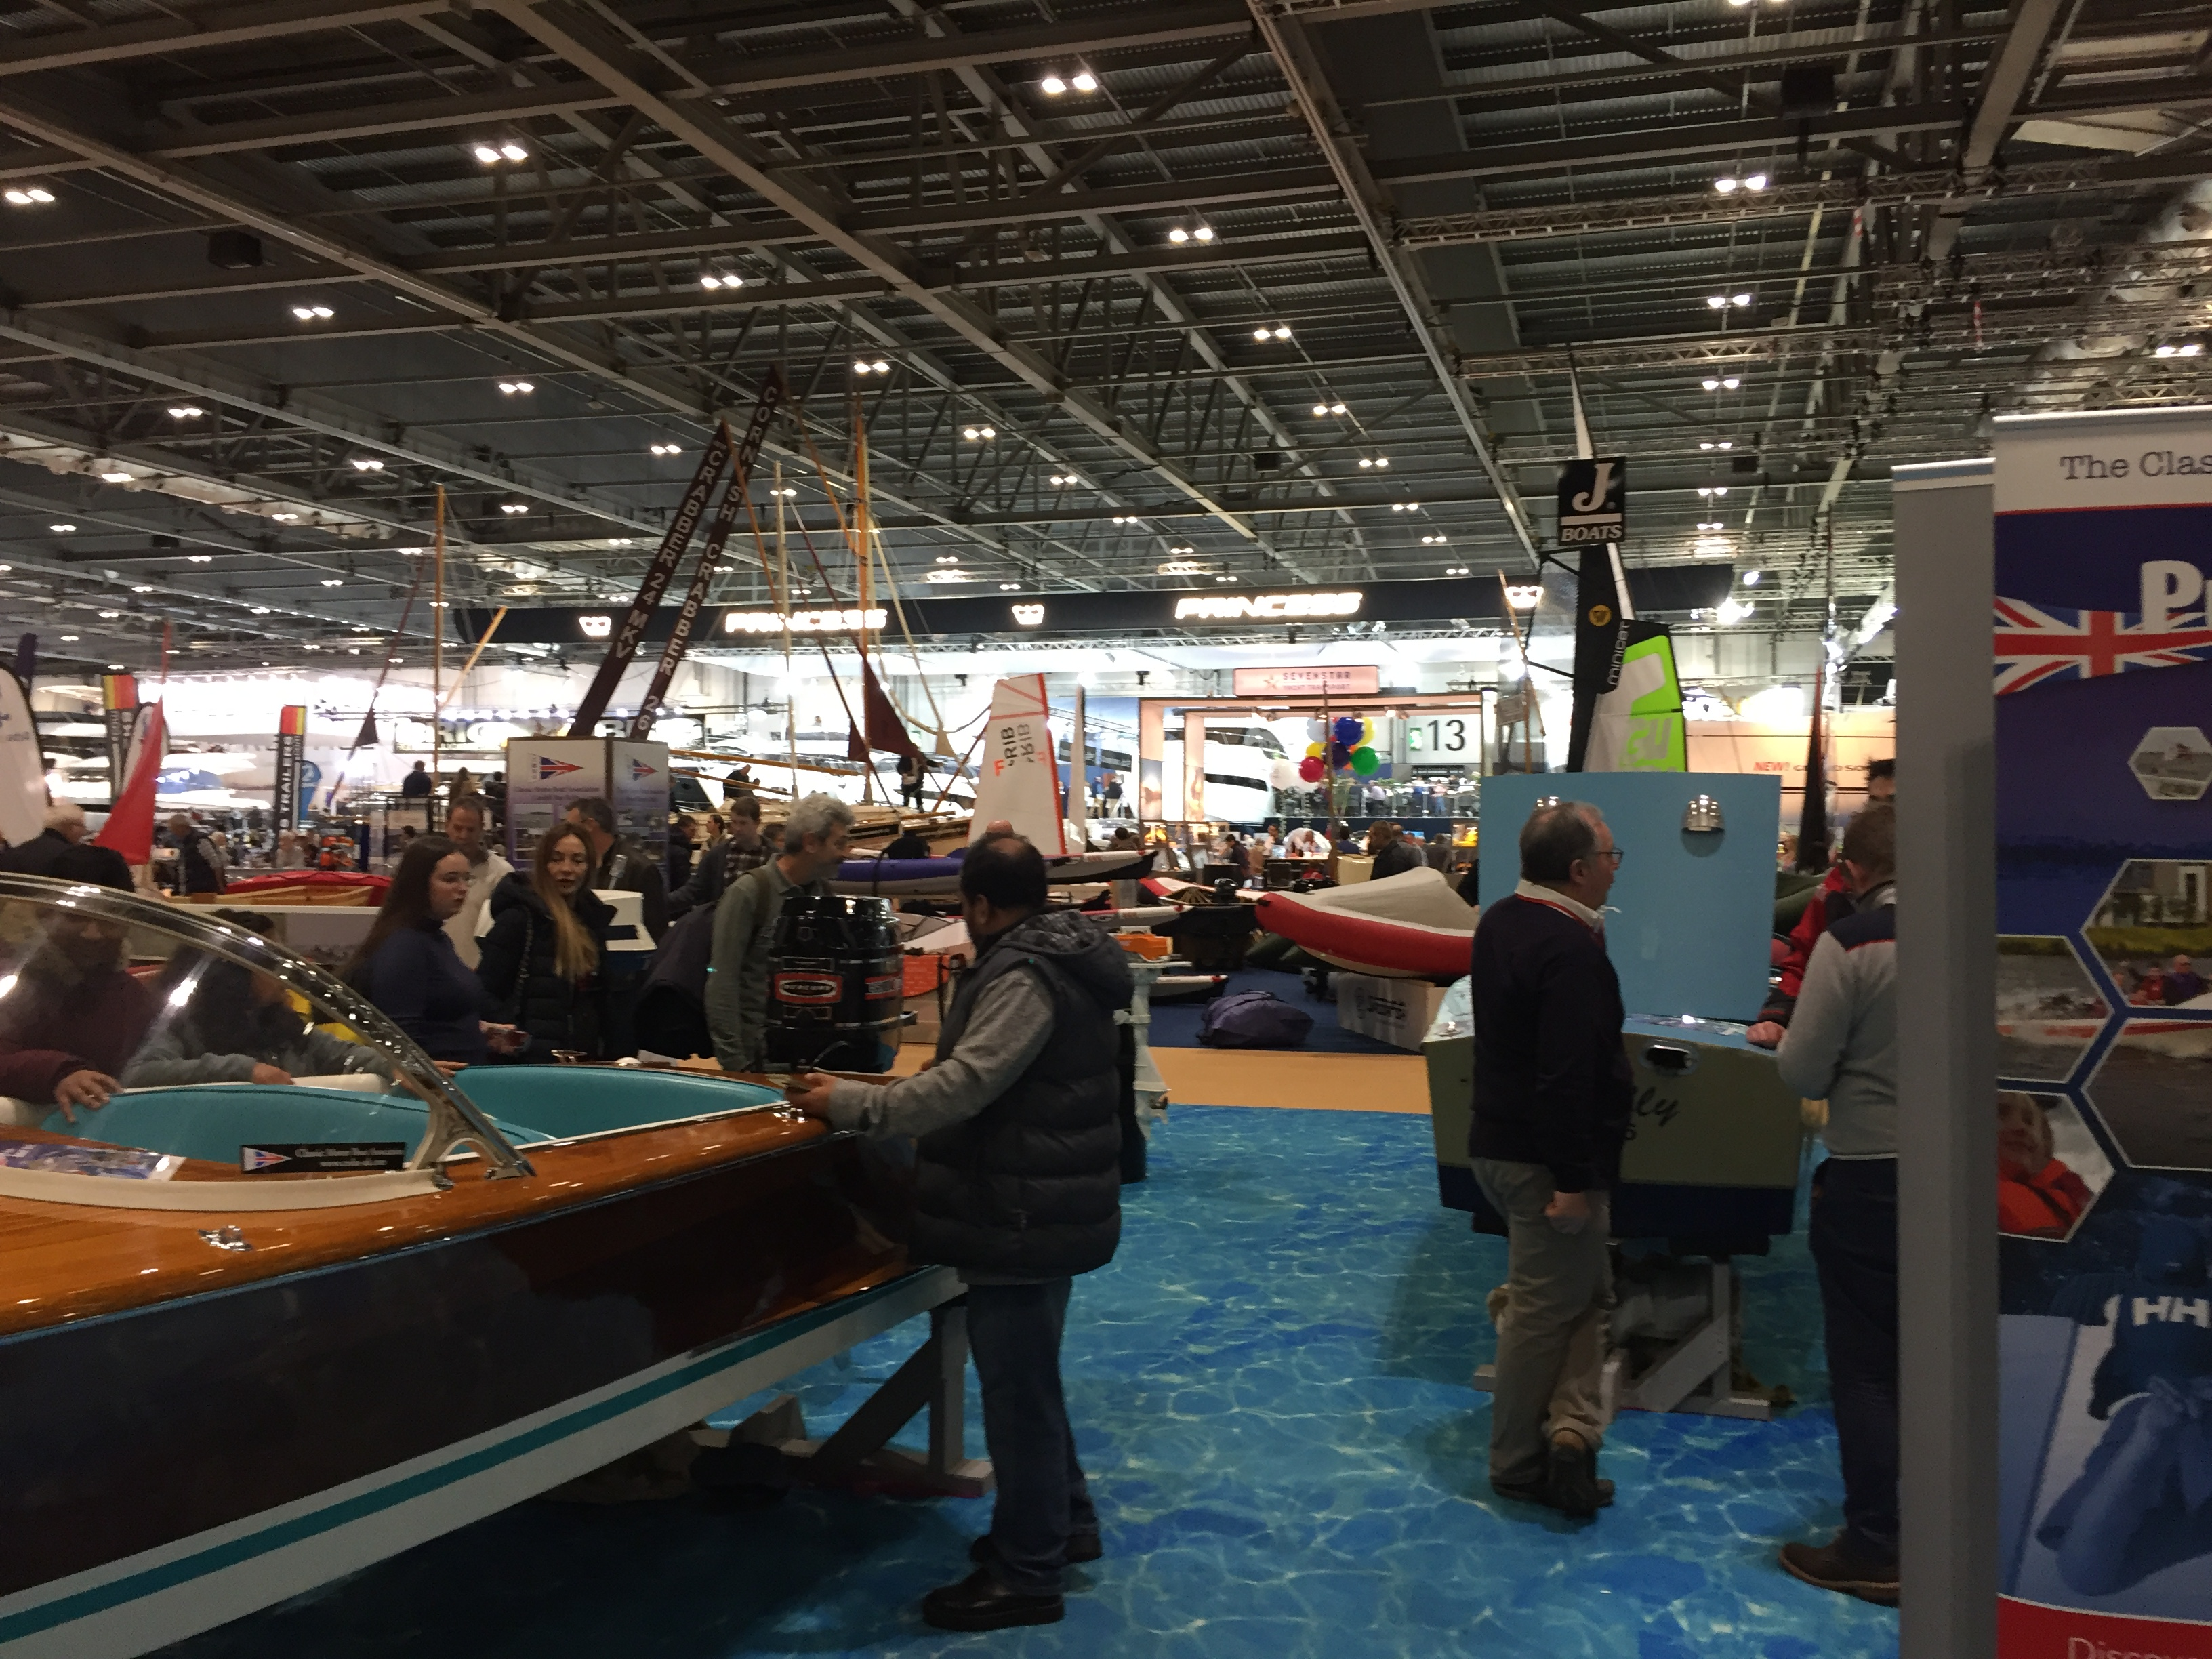 Luxury motor boats at the show in London